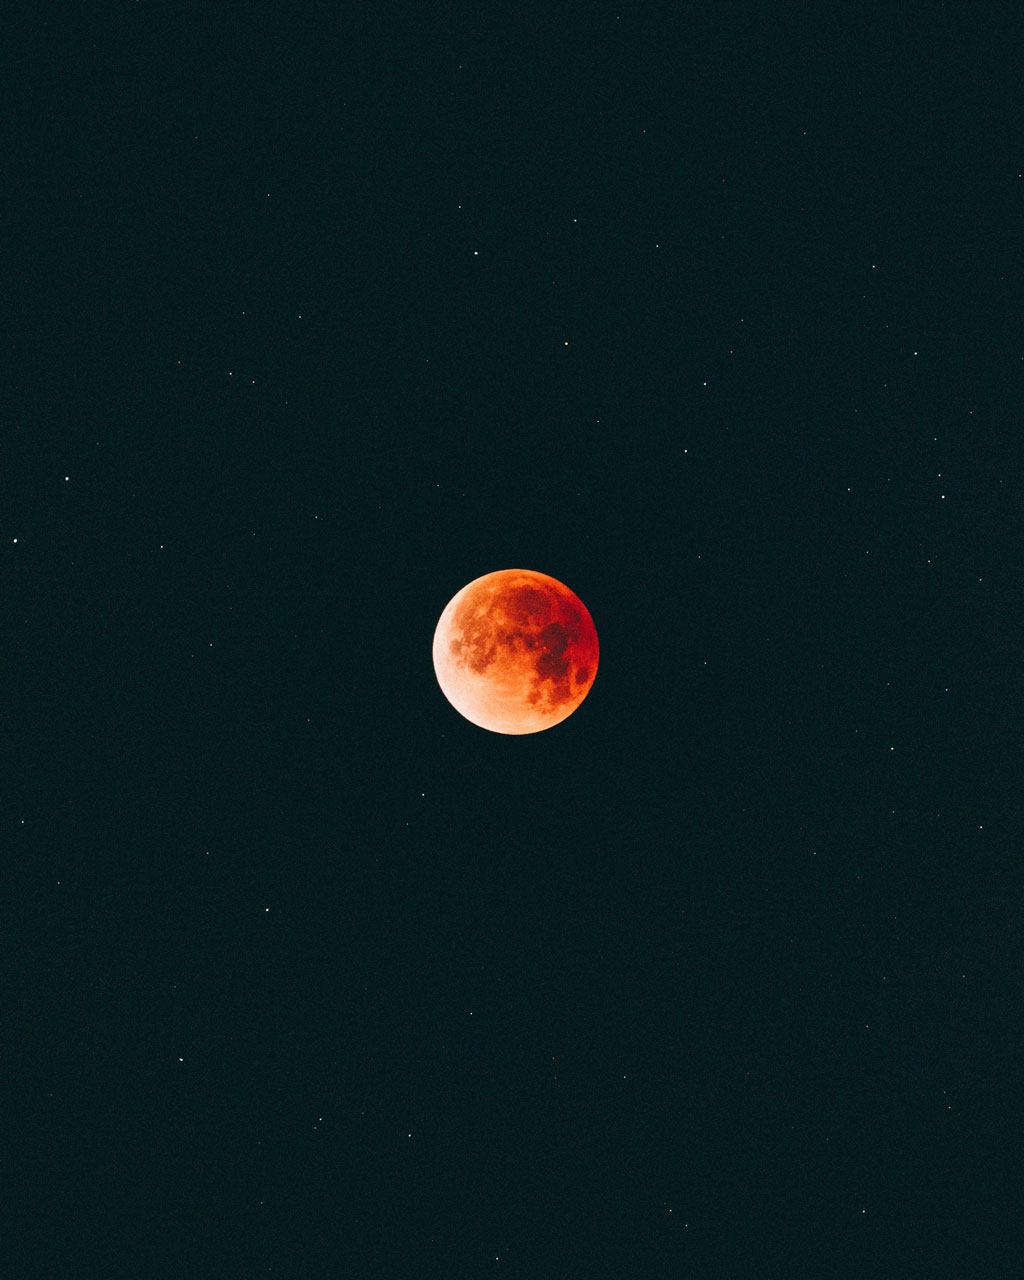 Night sky with red moon